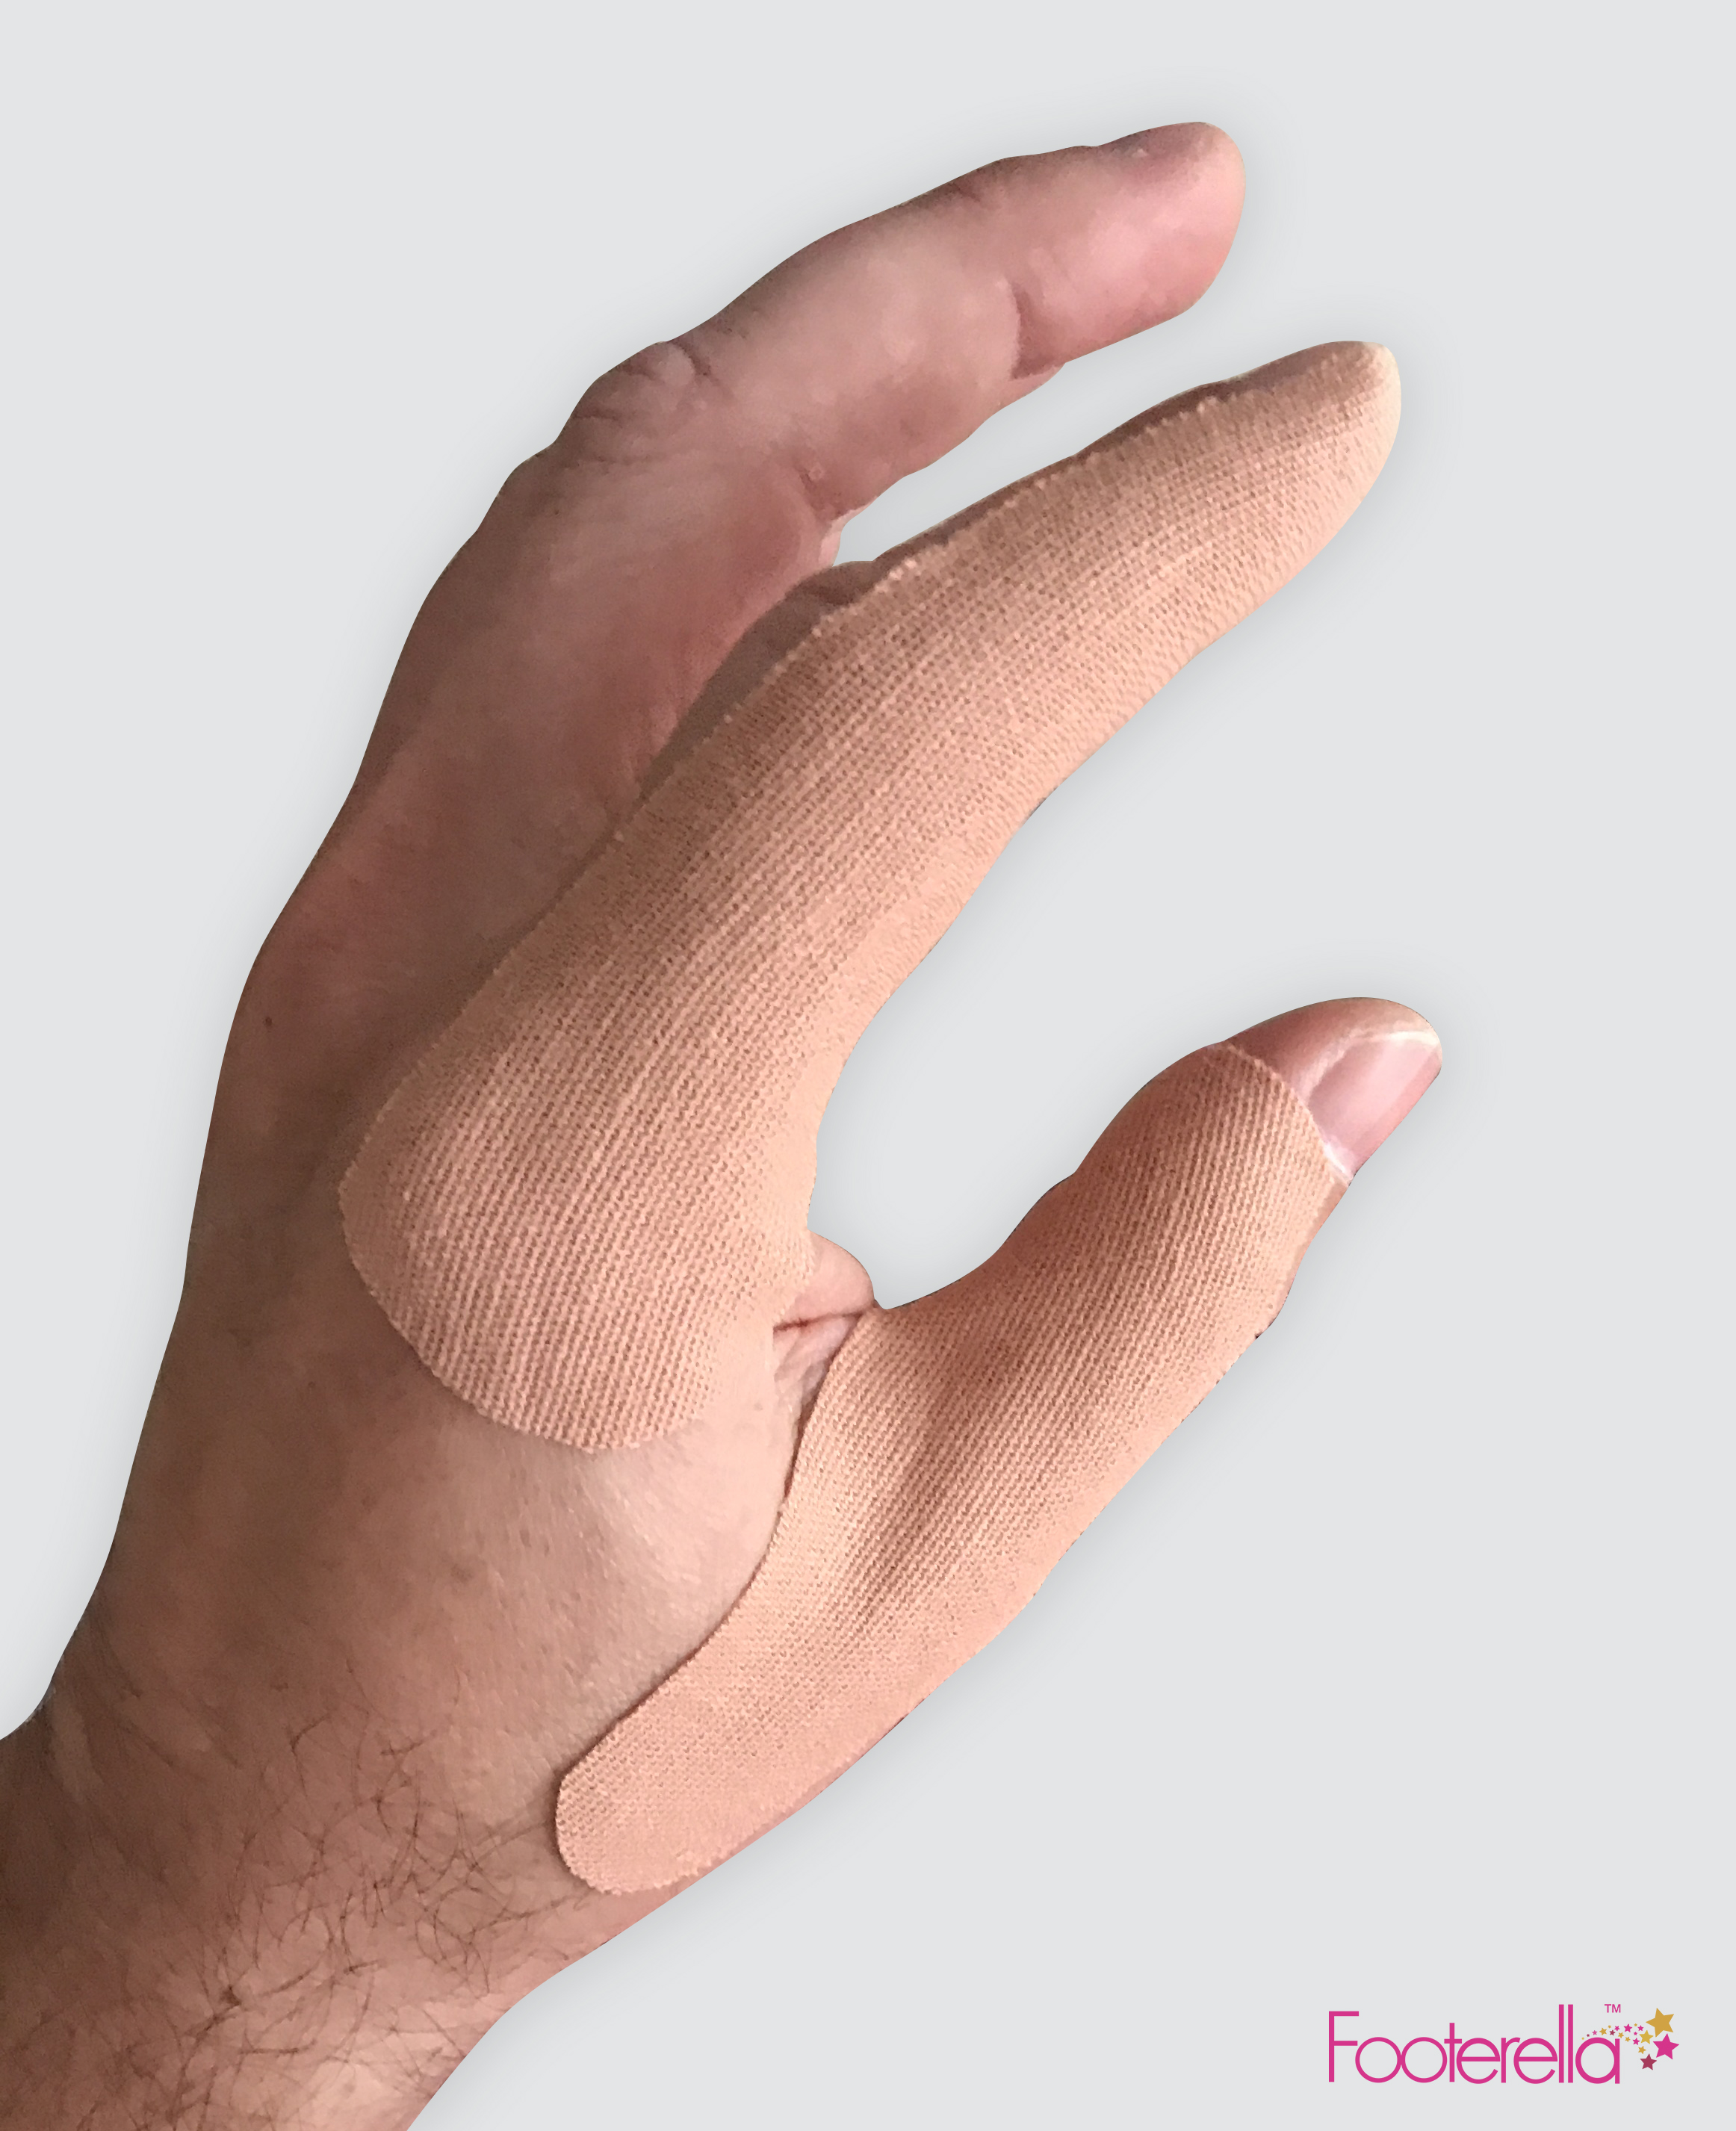 17+ Blister on left thumb from golf ideas